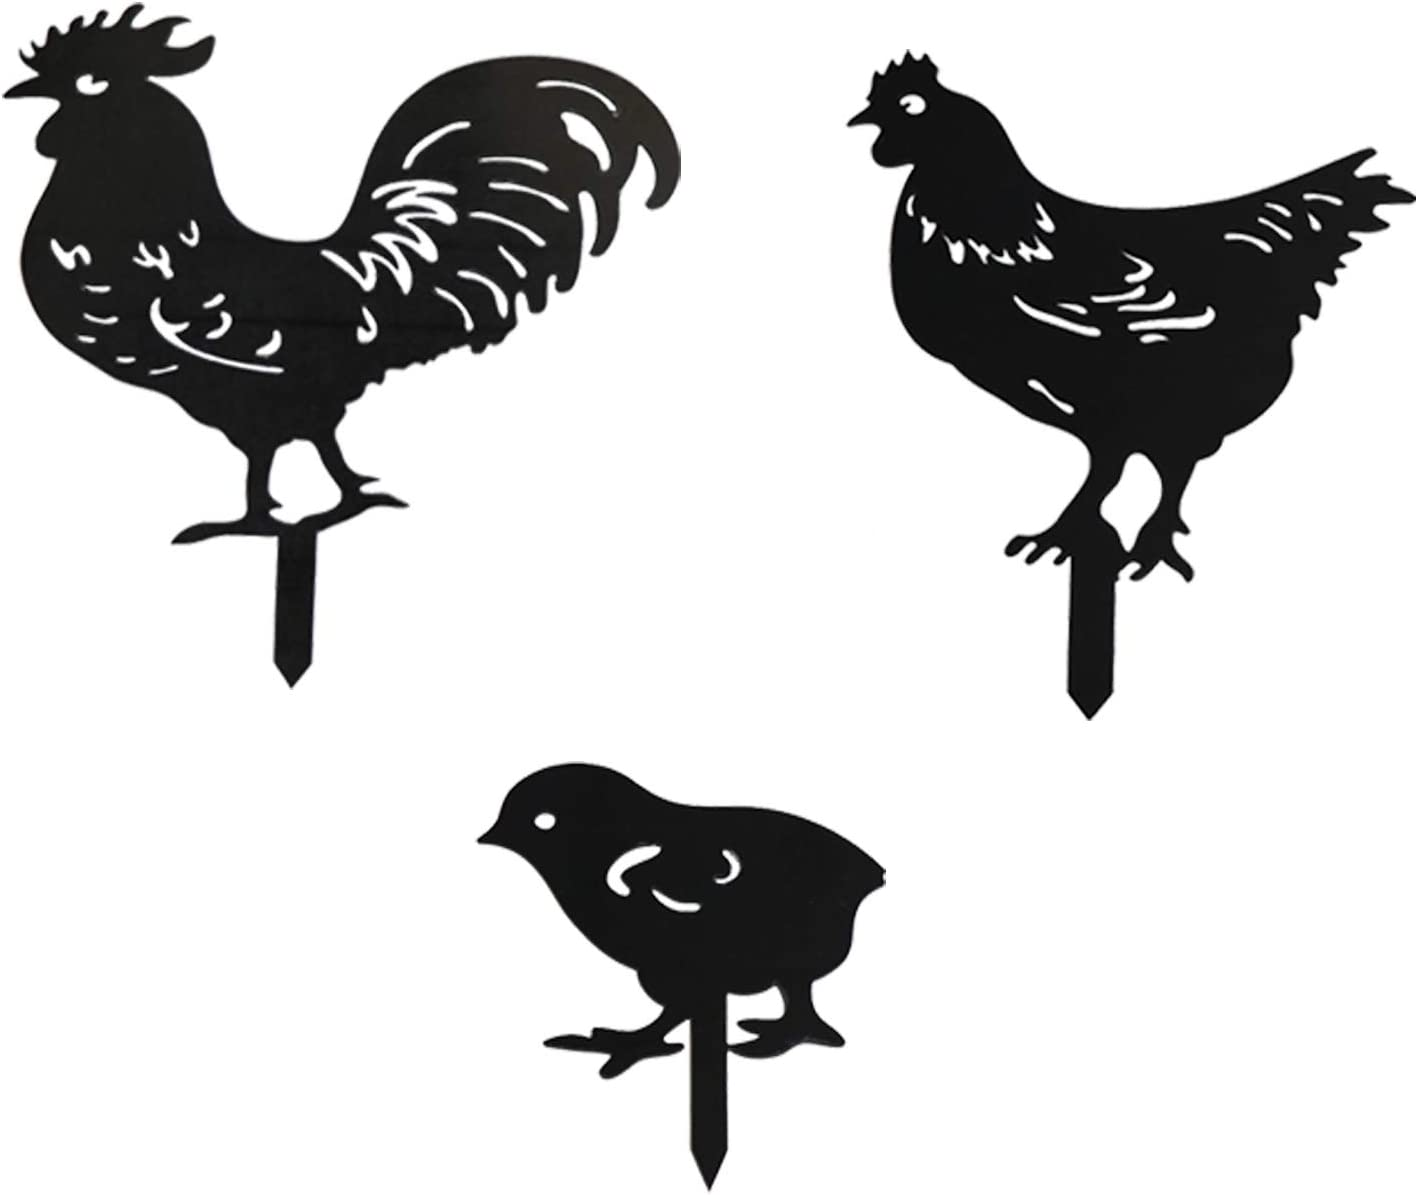 3 Pcs Upgrade Chicken Garden Country Decor for Outside Hen and Rooster Silhouette Ornament for The Home Yard Art Stakes Decorations Outdoor Black Hollow Out Animal Shape for Lawns Backyards